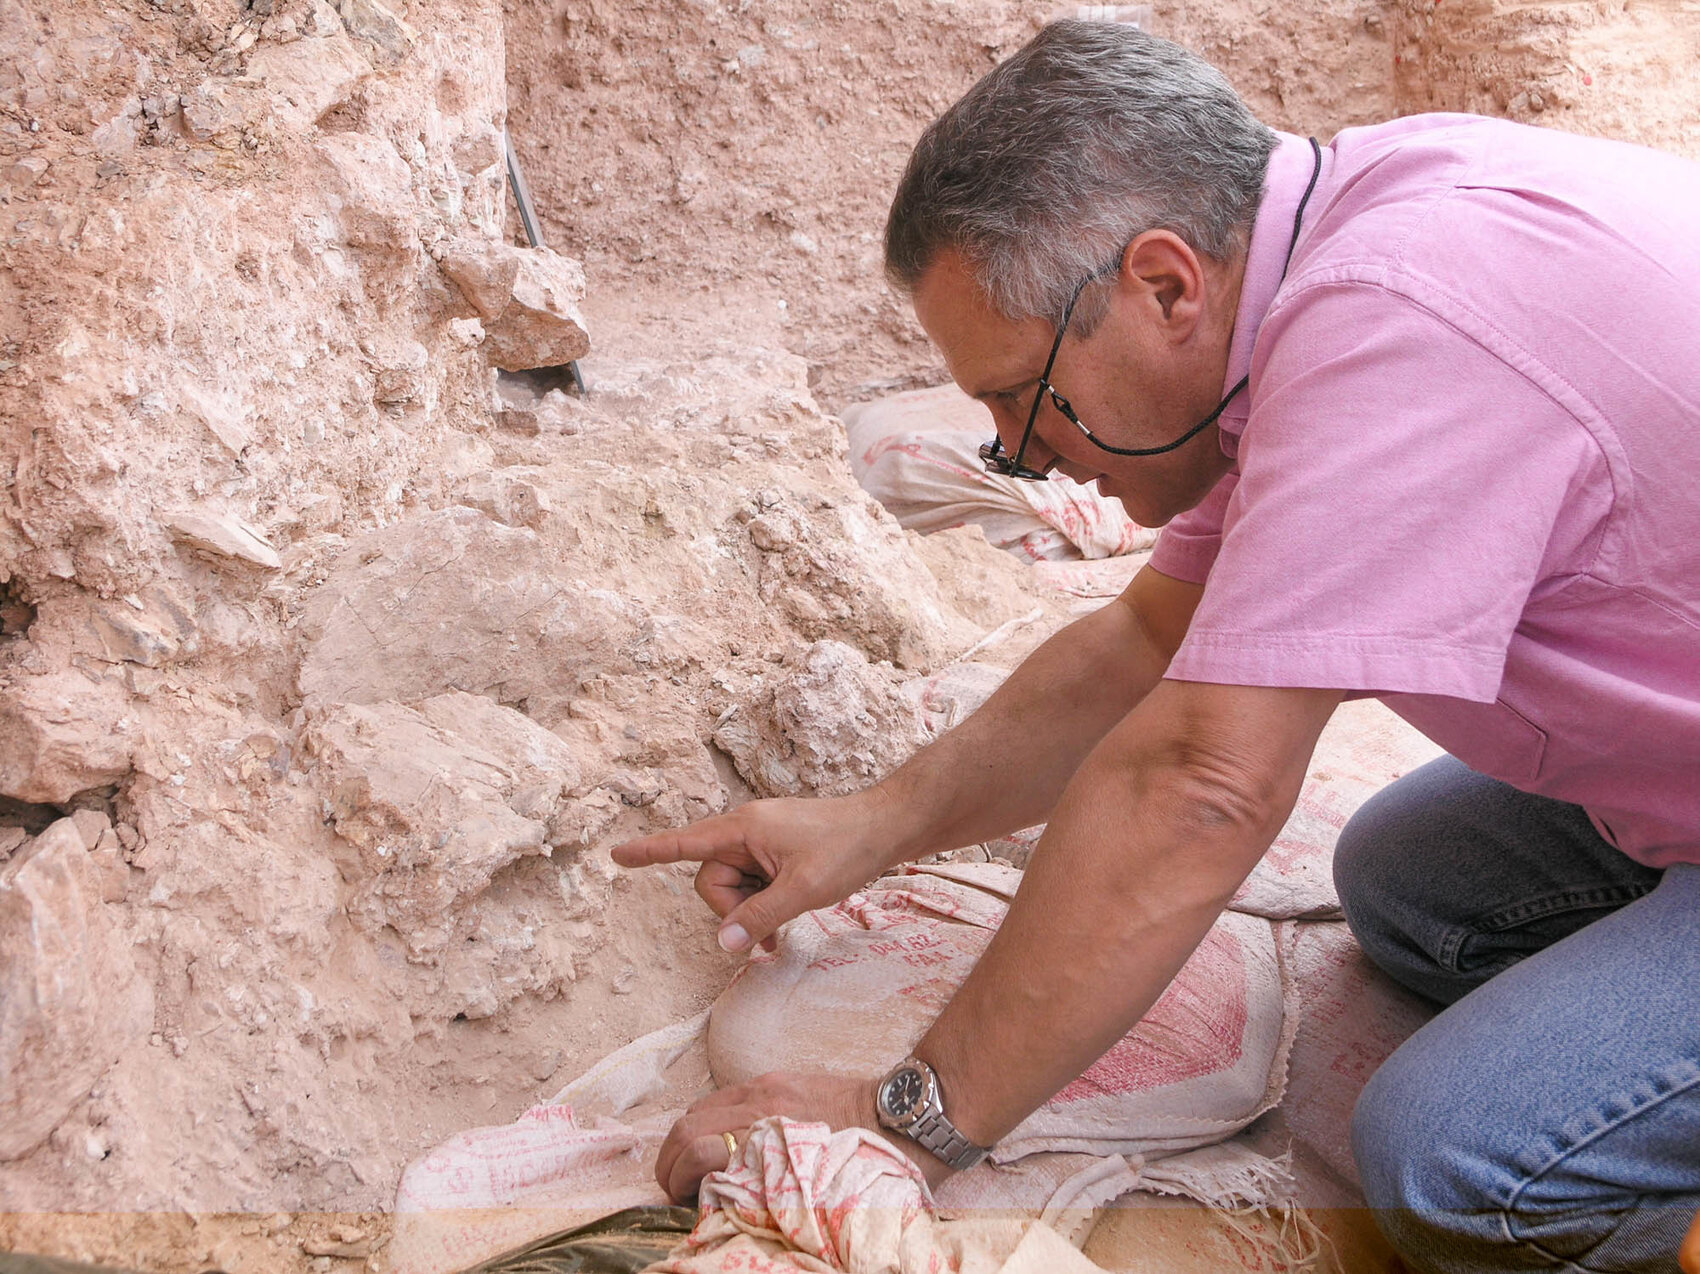 Max Planck Institute paleoanthropologist Jean-Jacques Hublin examines the new finds at Jebel Irhoud, in Morocco. The eye orbits of a crushed human skull more than 300,000 years old are visible just beyond his fingertip.     (Shannon McPherron/Nature)